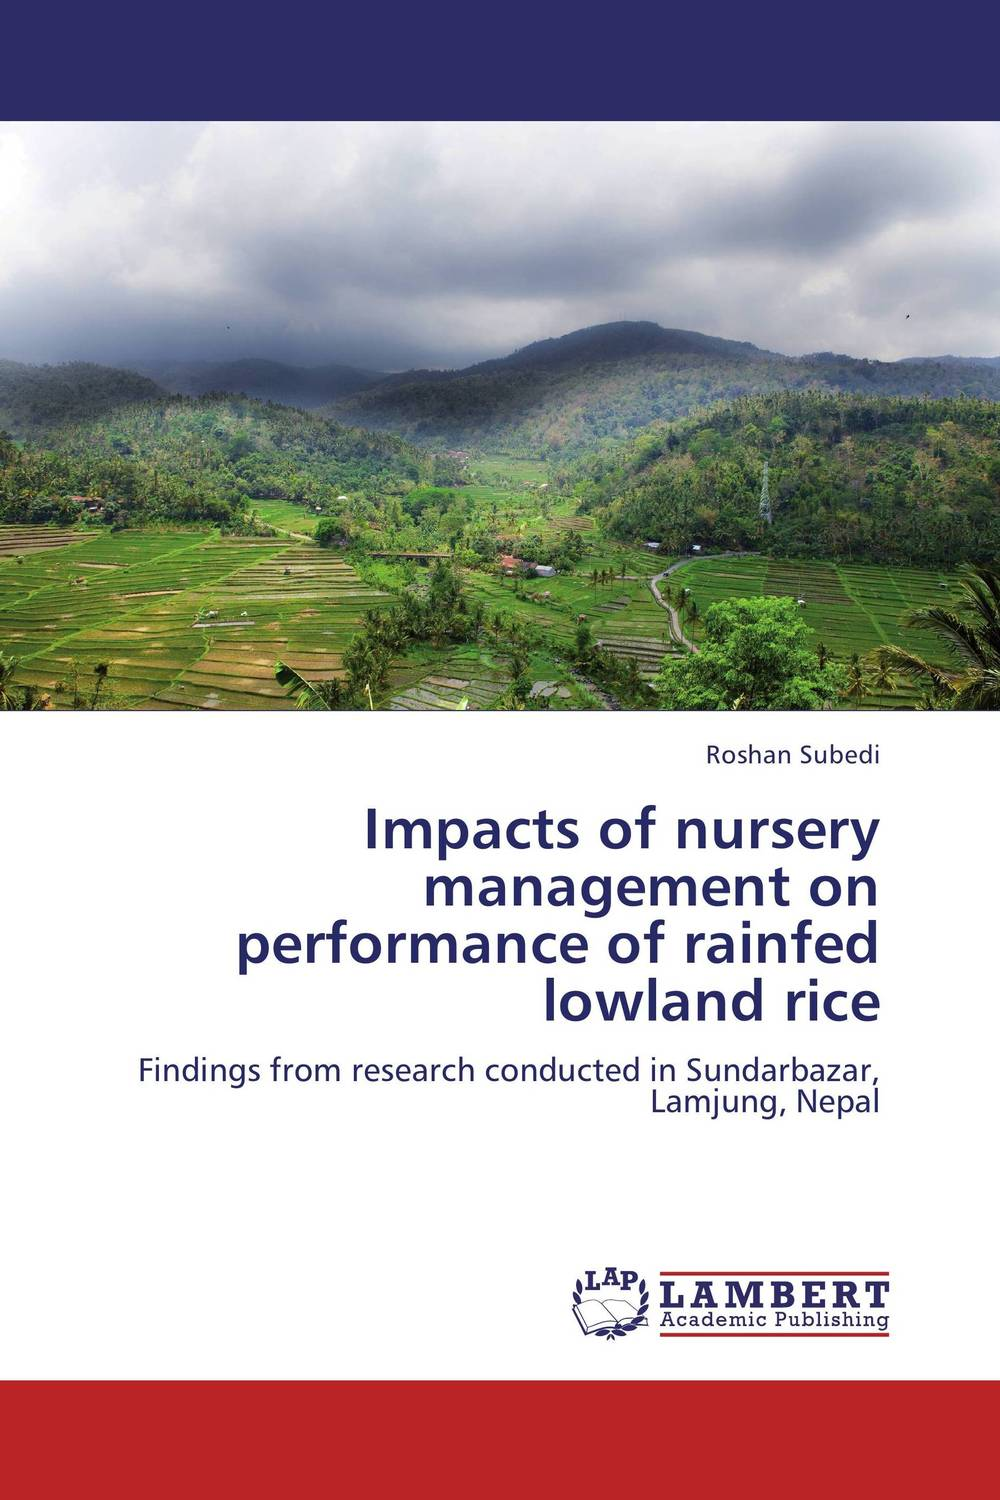 Impacts of nursery management on performance of rainfed lowland rice k r k naidu a v ramana and r veeraraghavaiah common vetch management in rice fallow blackgram